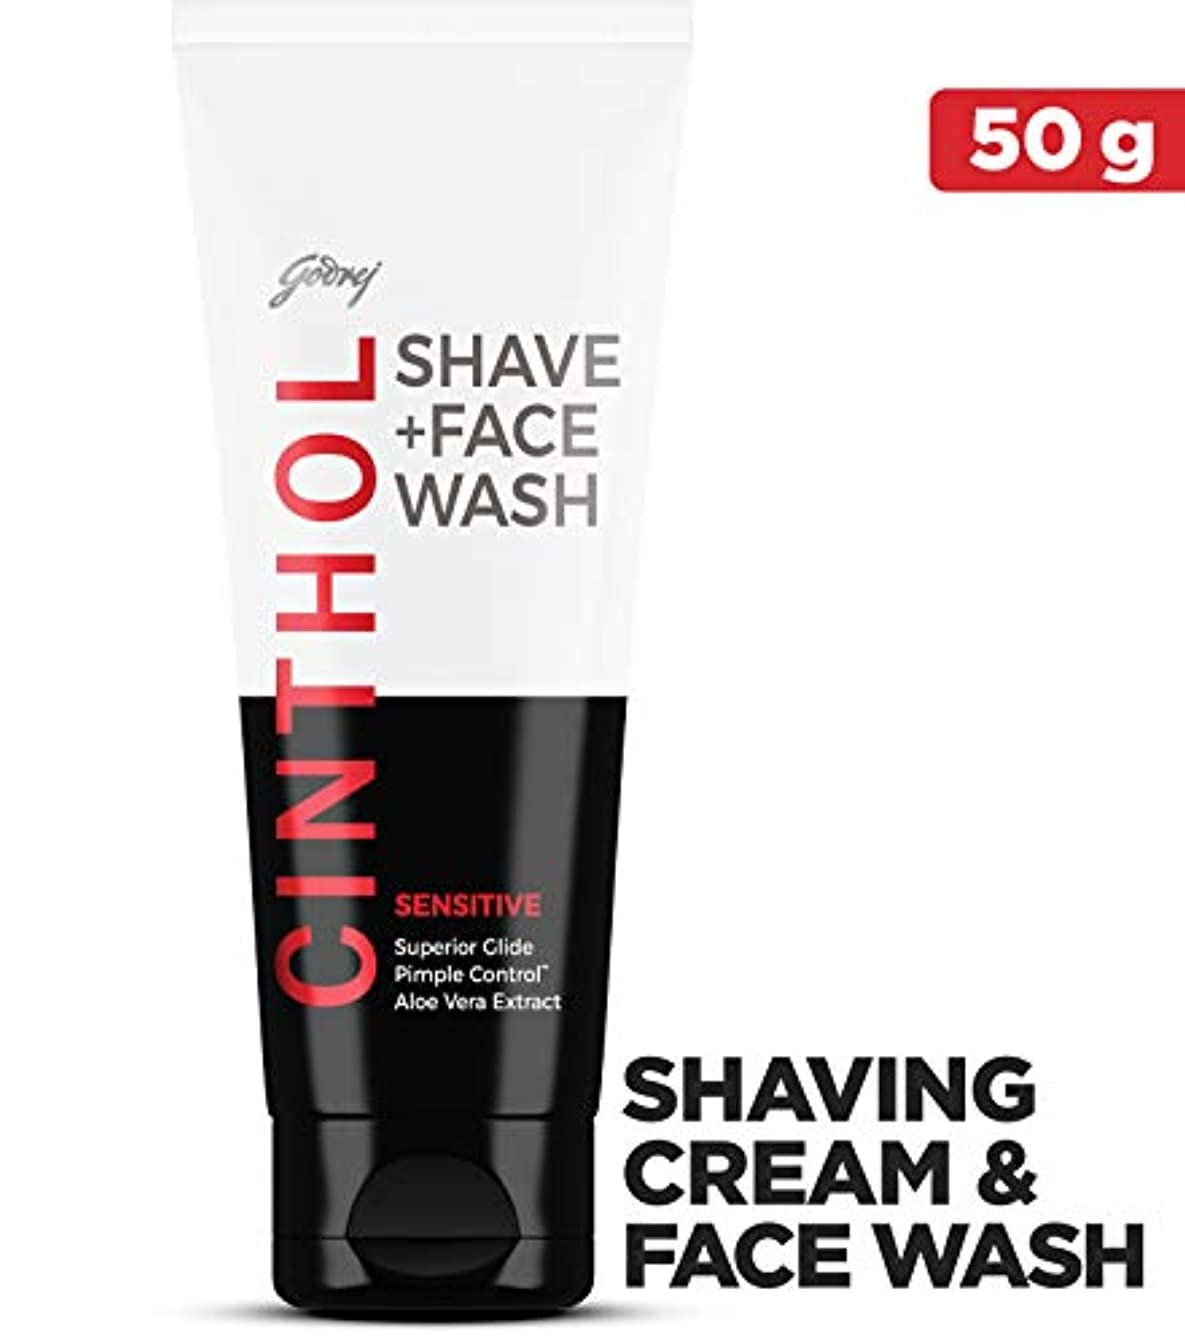 ながら輸血利点Cinthol Sensitive Shaving + Face Wash, 50g